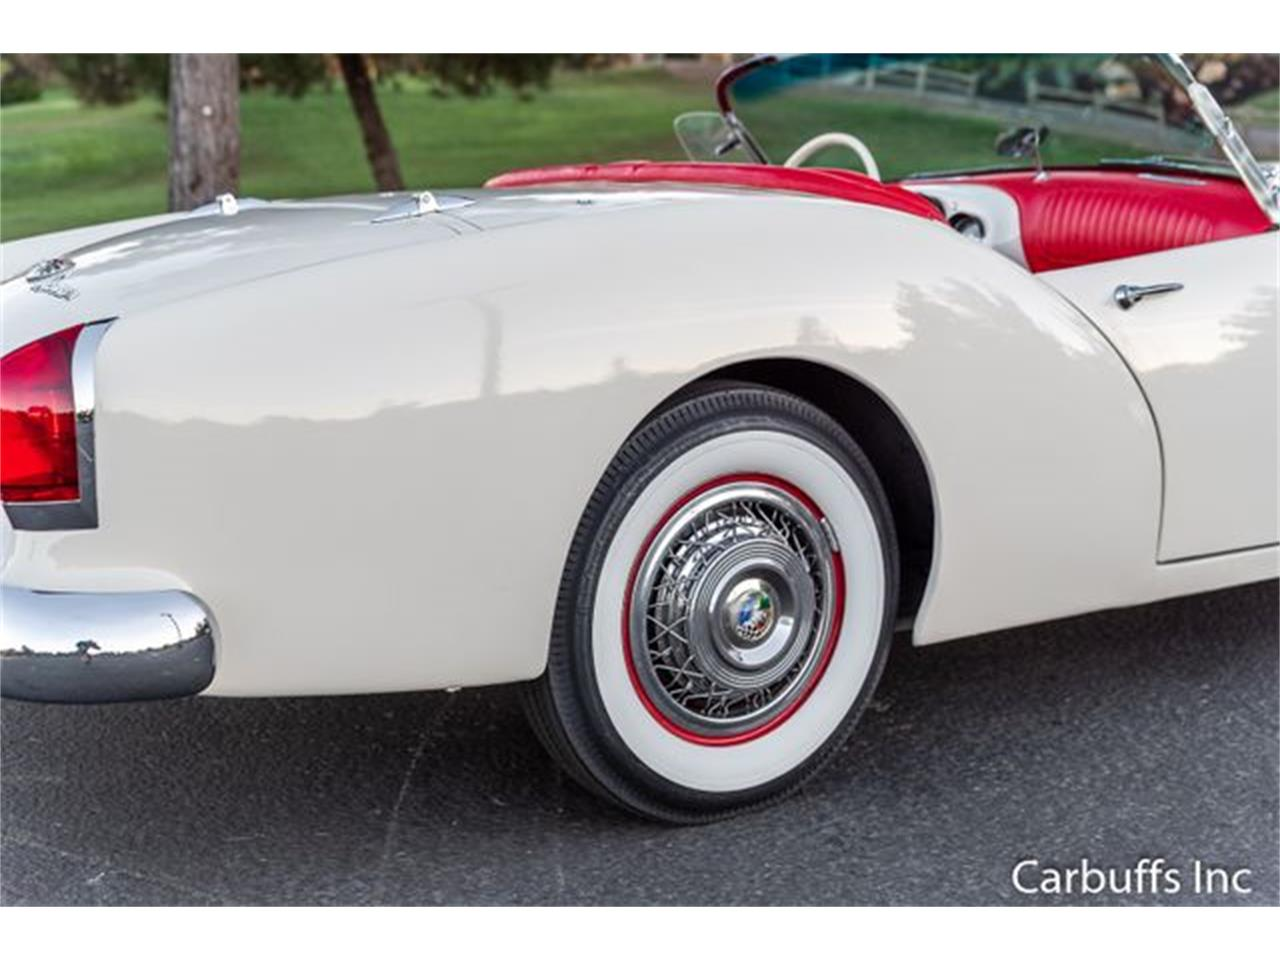 For Sale: 1954 Kaiser Darrin in Concord, California on